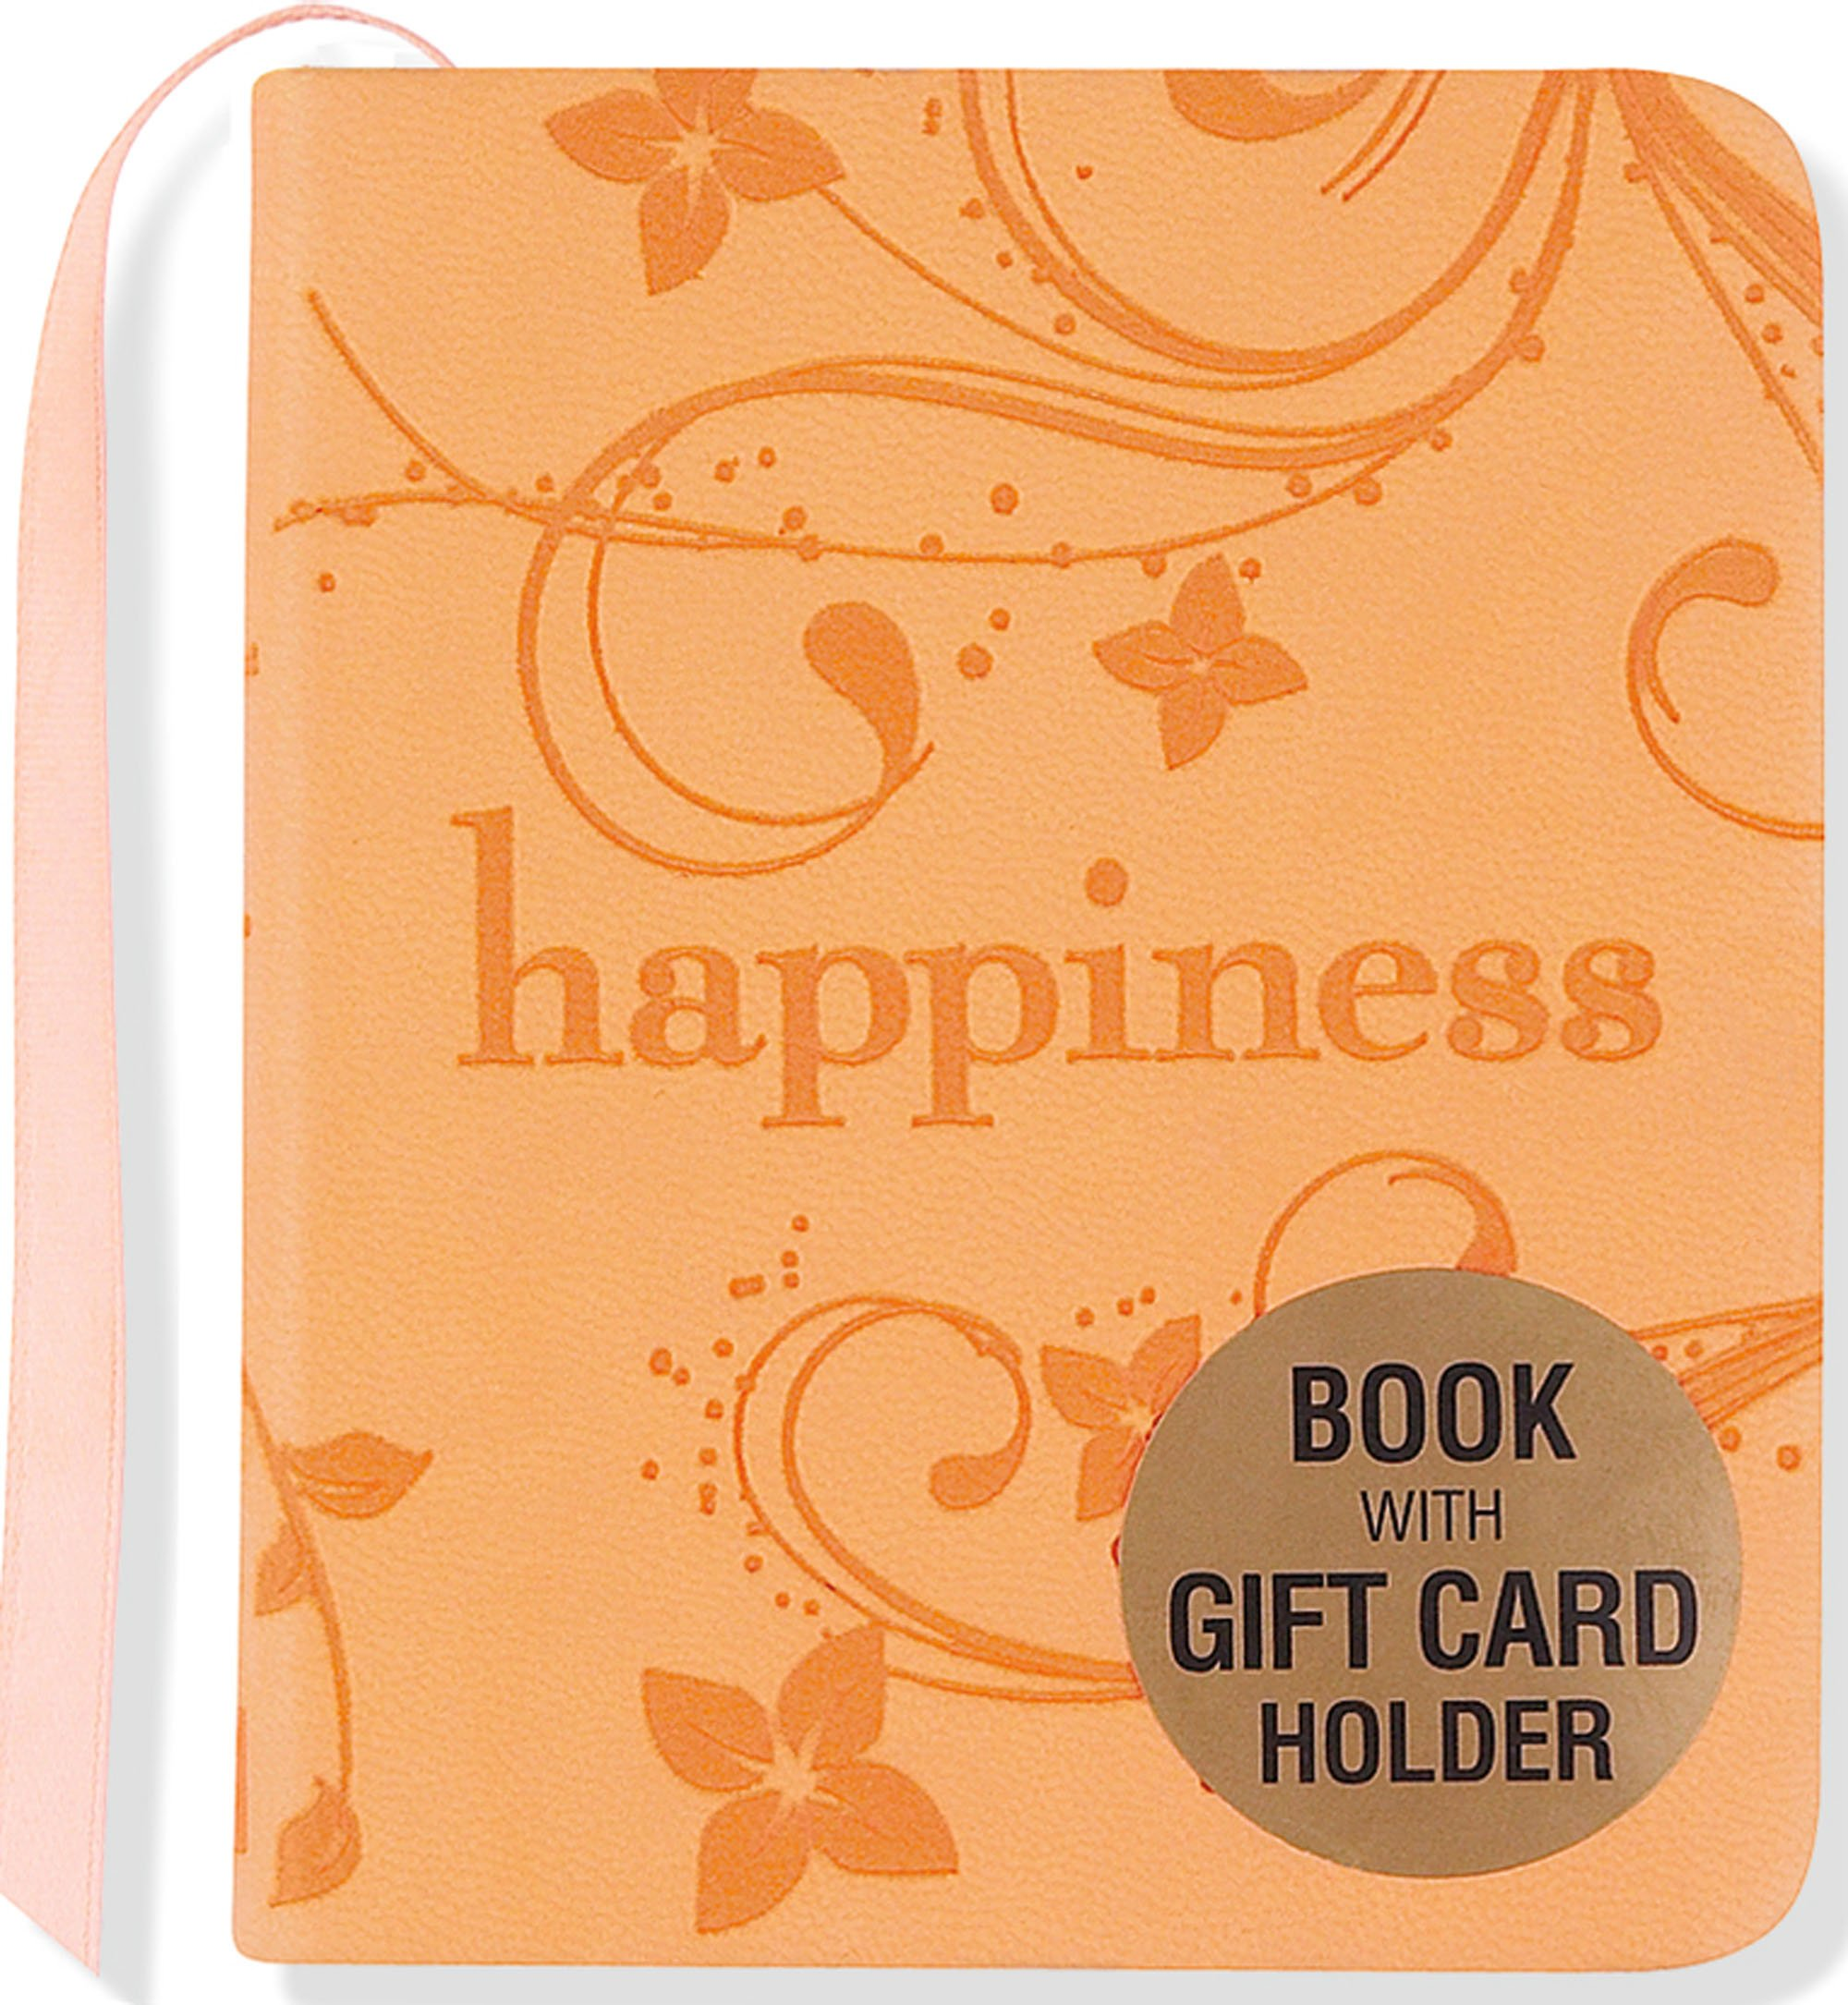 happiness mini book t card holder evelyn beilenson